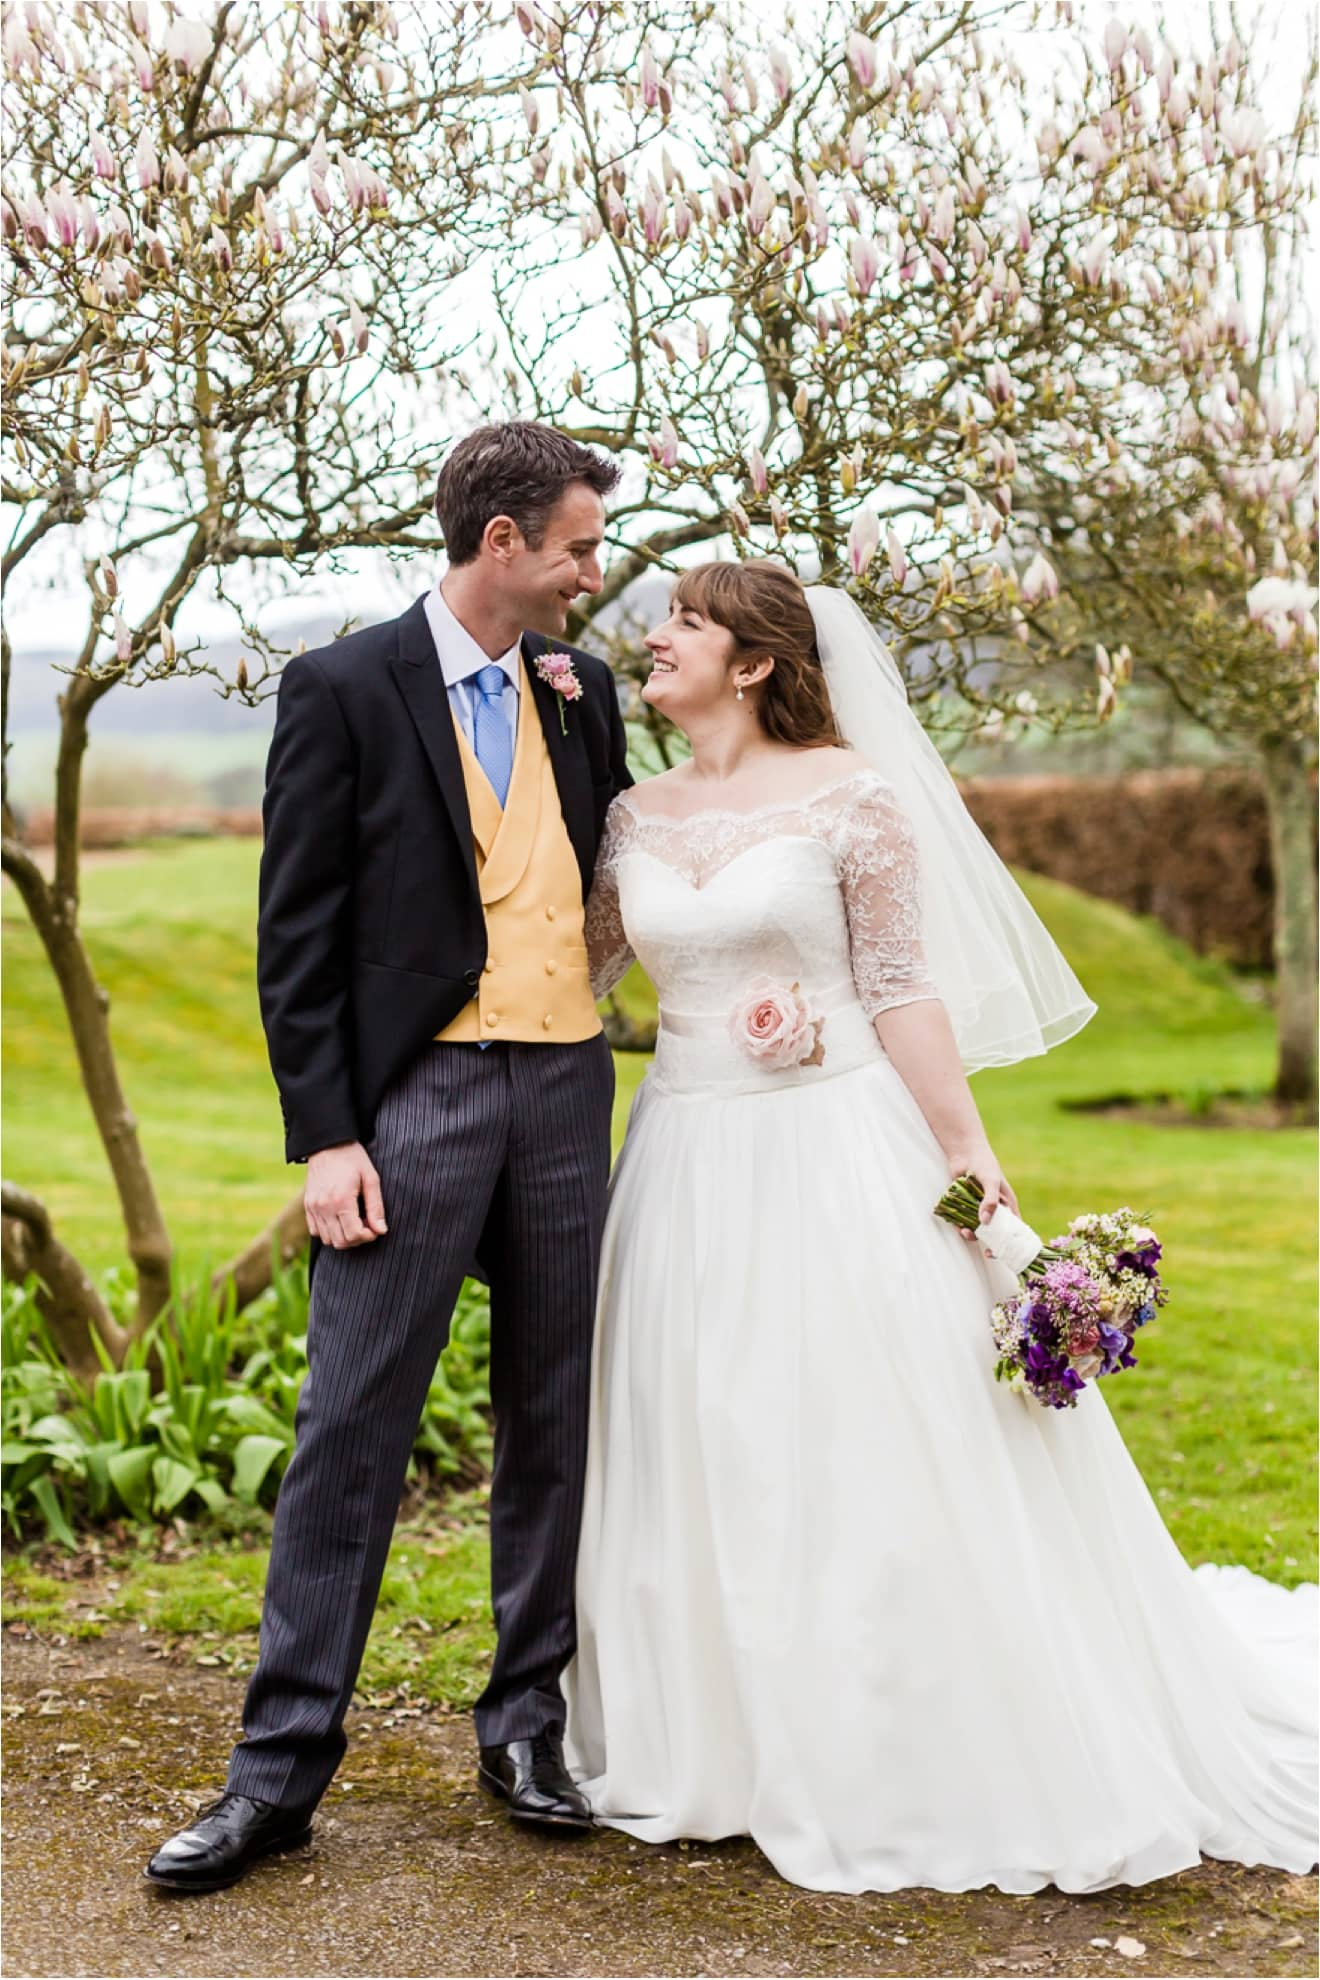 wedding-at-hambledon-vineyard-eddie-judd-photographer0060